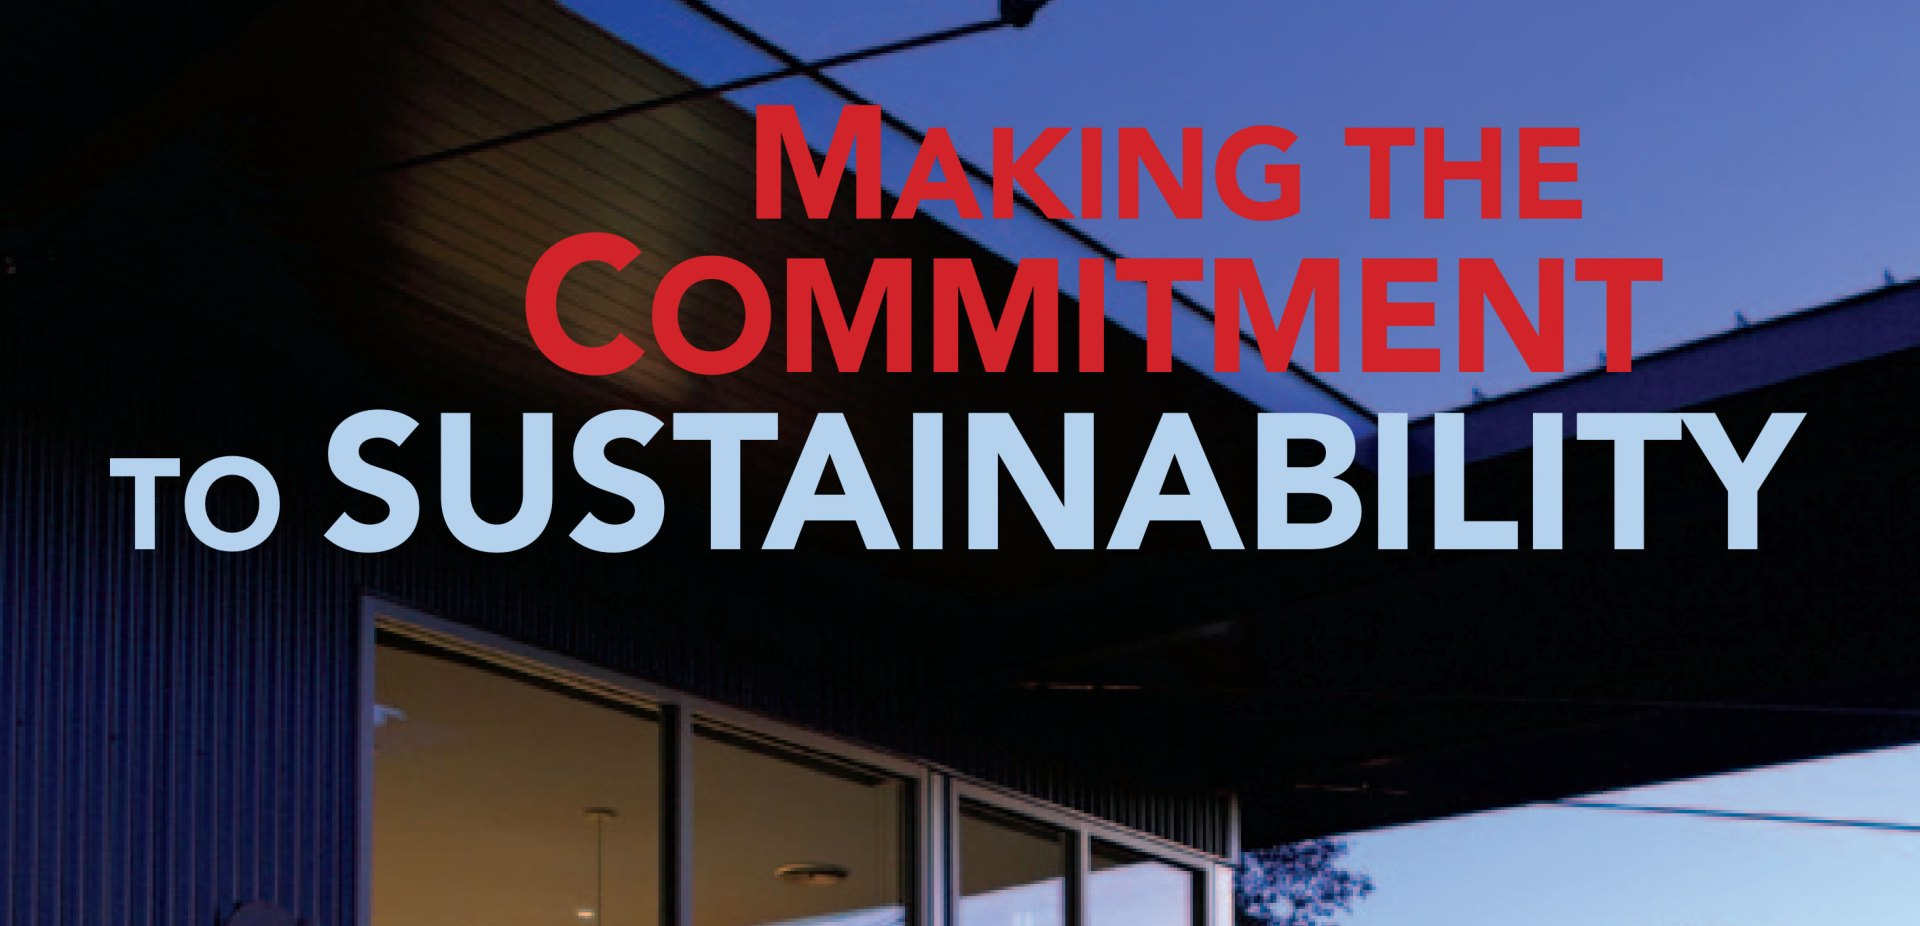 Making the Commitment to Sustainability